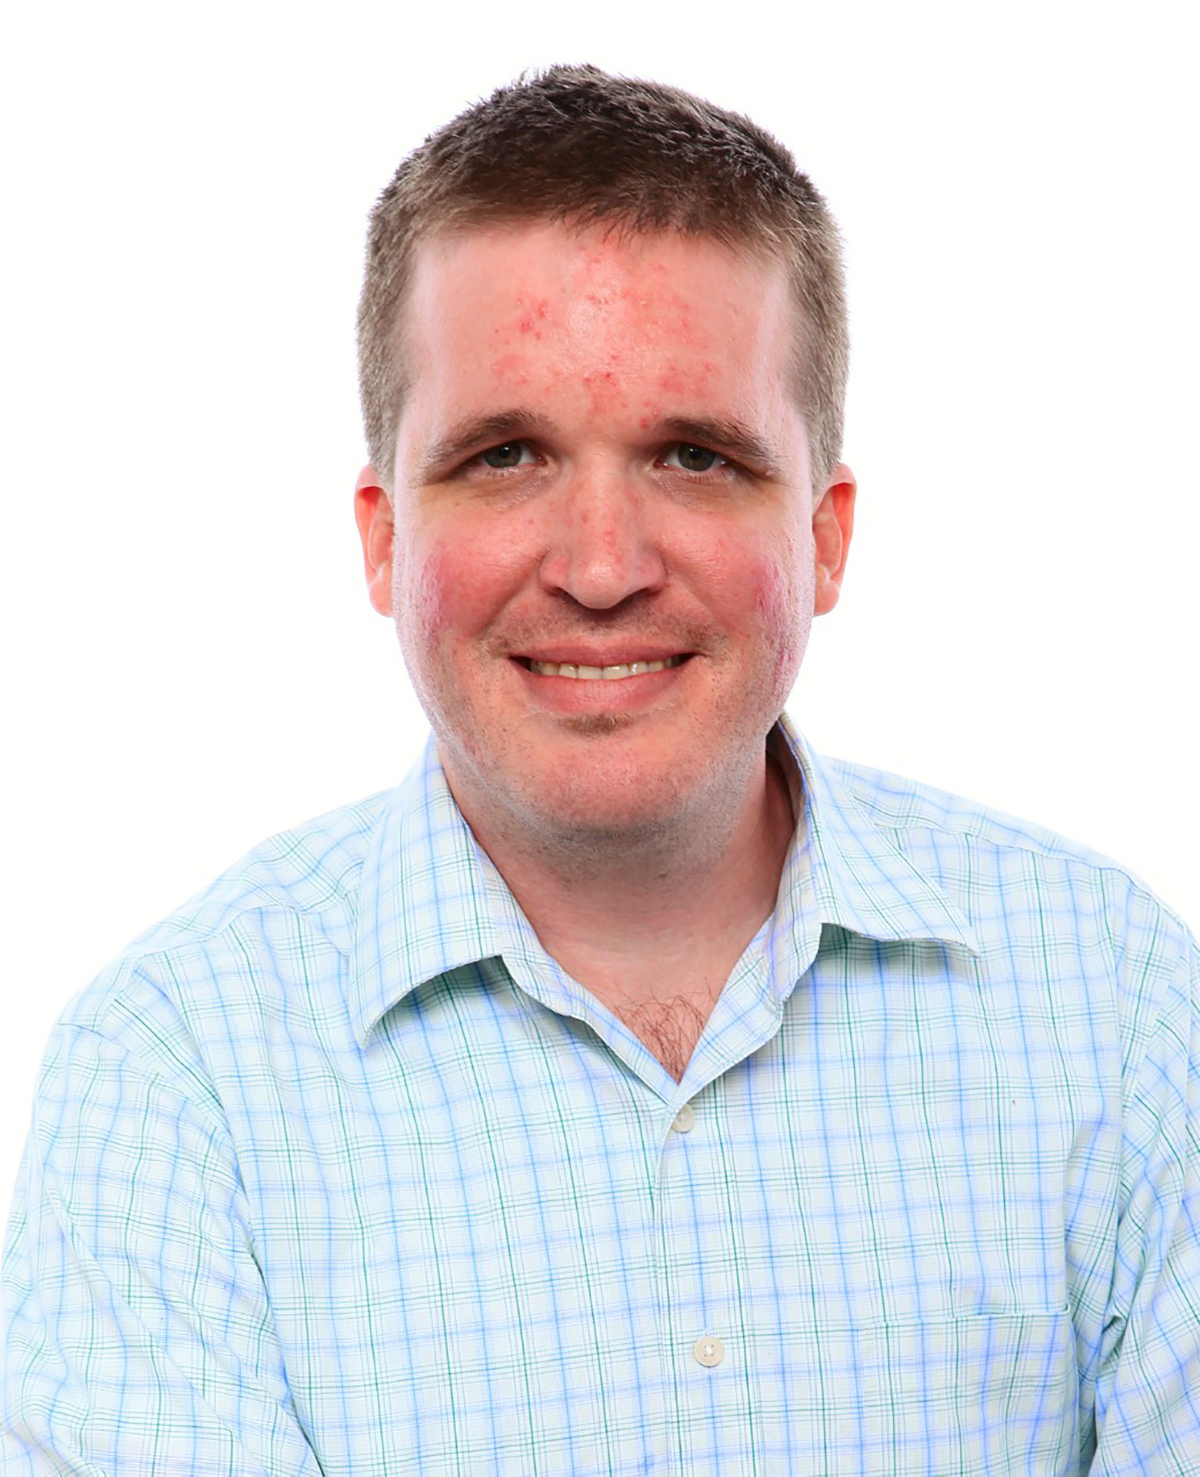 BUSINESS RESOURCES: Brian Pifer, vice president of entrepreneurship at Small Business Majority, will be hosting a webinar on April 16 about the resources available to small businesses during the COVID-19 pandemic. / COURTESY BRIAN PIFER